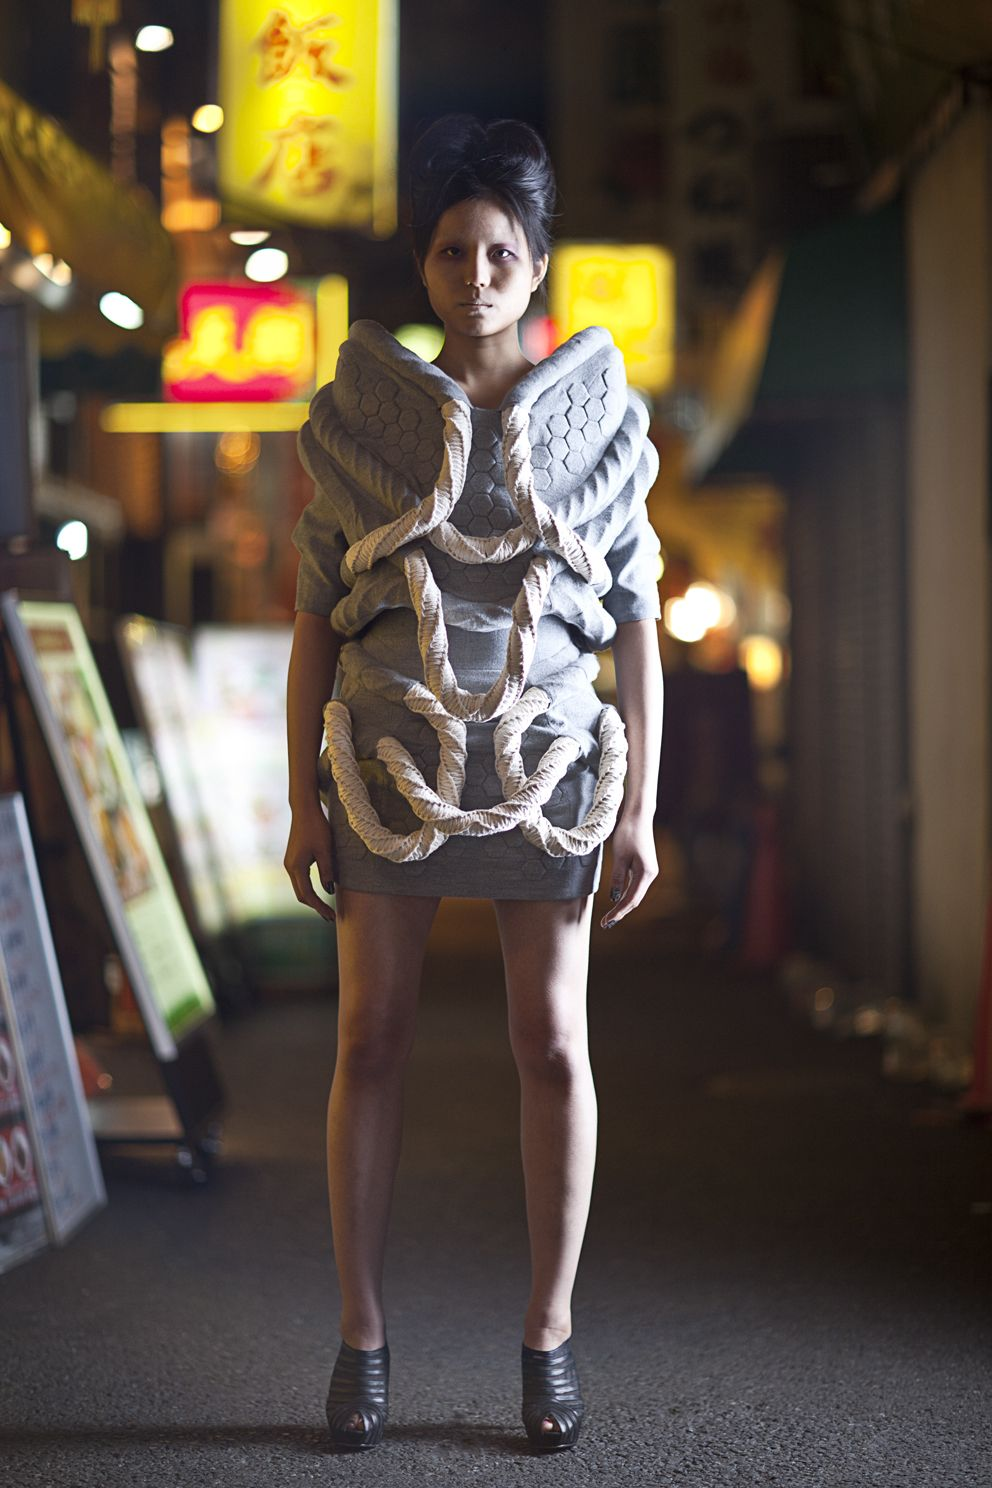 SIKAKEPROJECT: KEITA EBIHARA PHOTO SHOOOTING  #Japan #fashion #JapaneseFashion